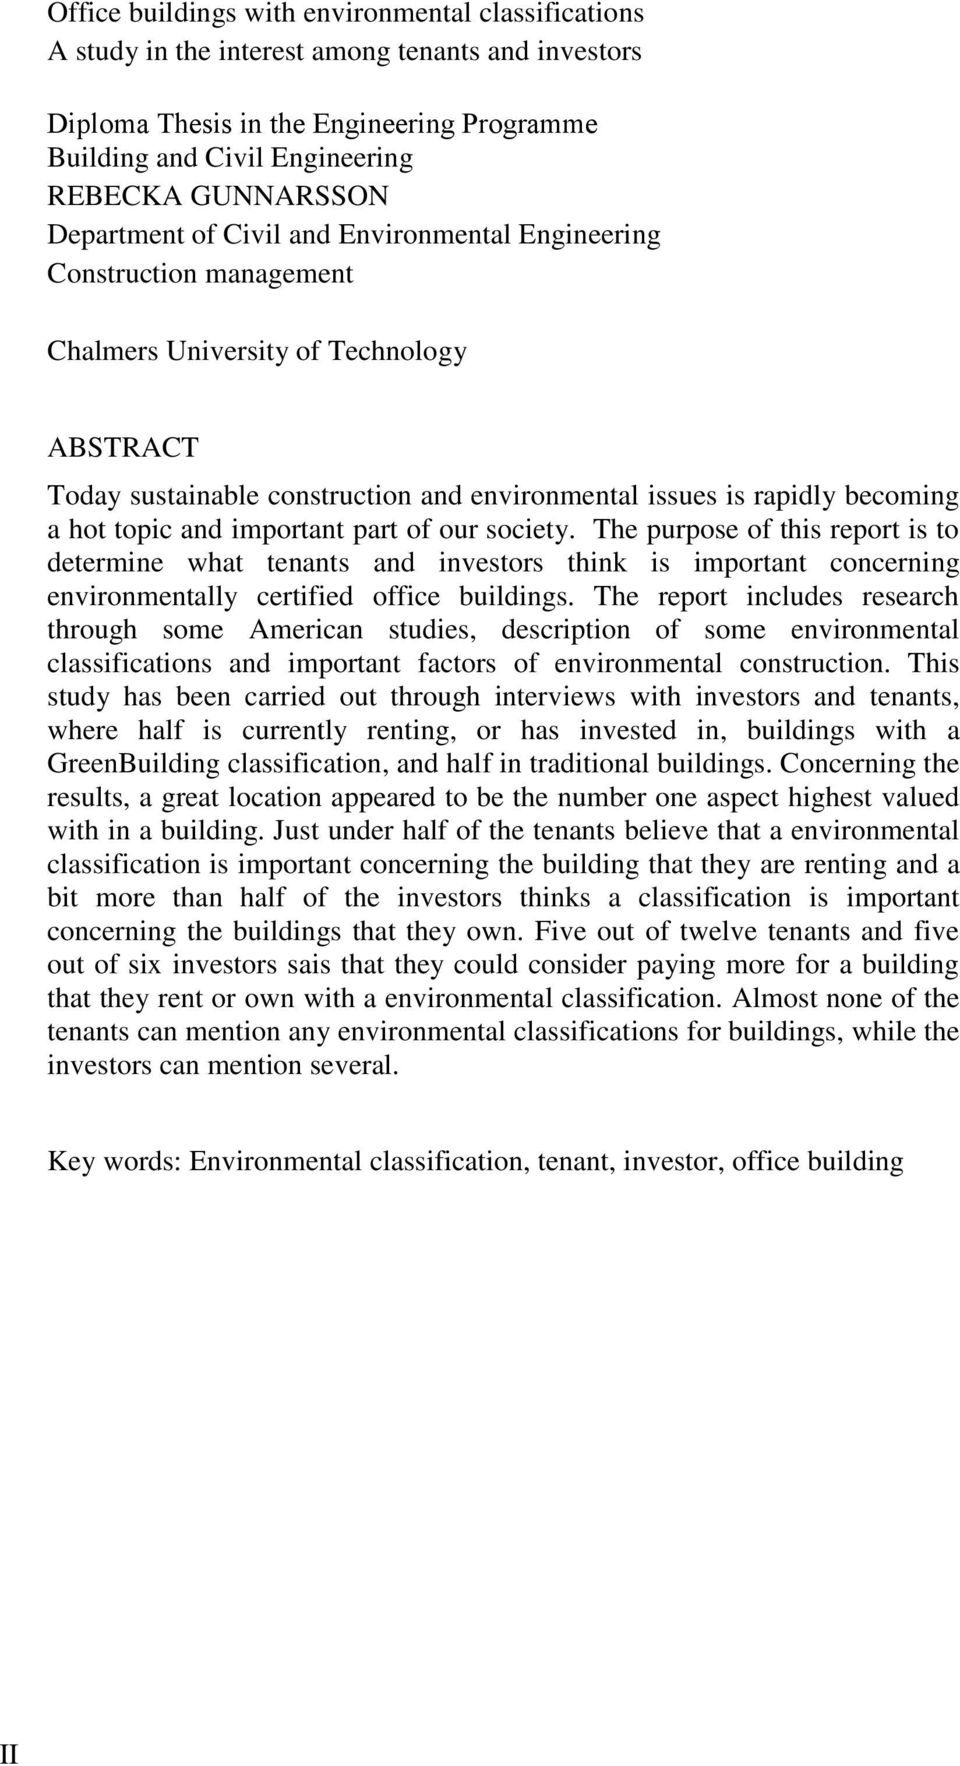 topic and important part of our society. The purpose of this report is to determine what tenants and investors think is important concerning environmentally certified office buildings.